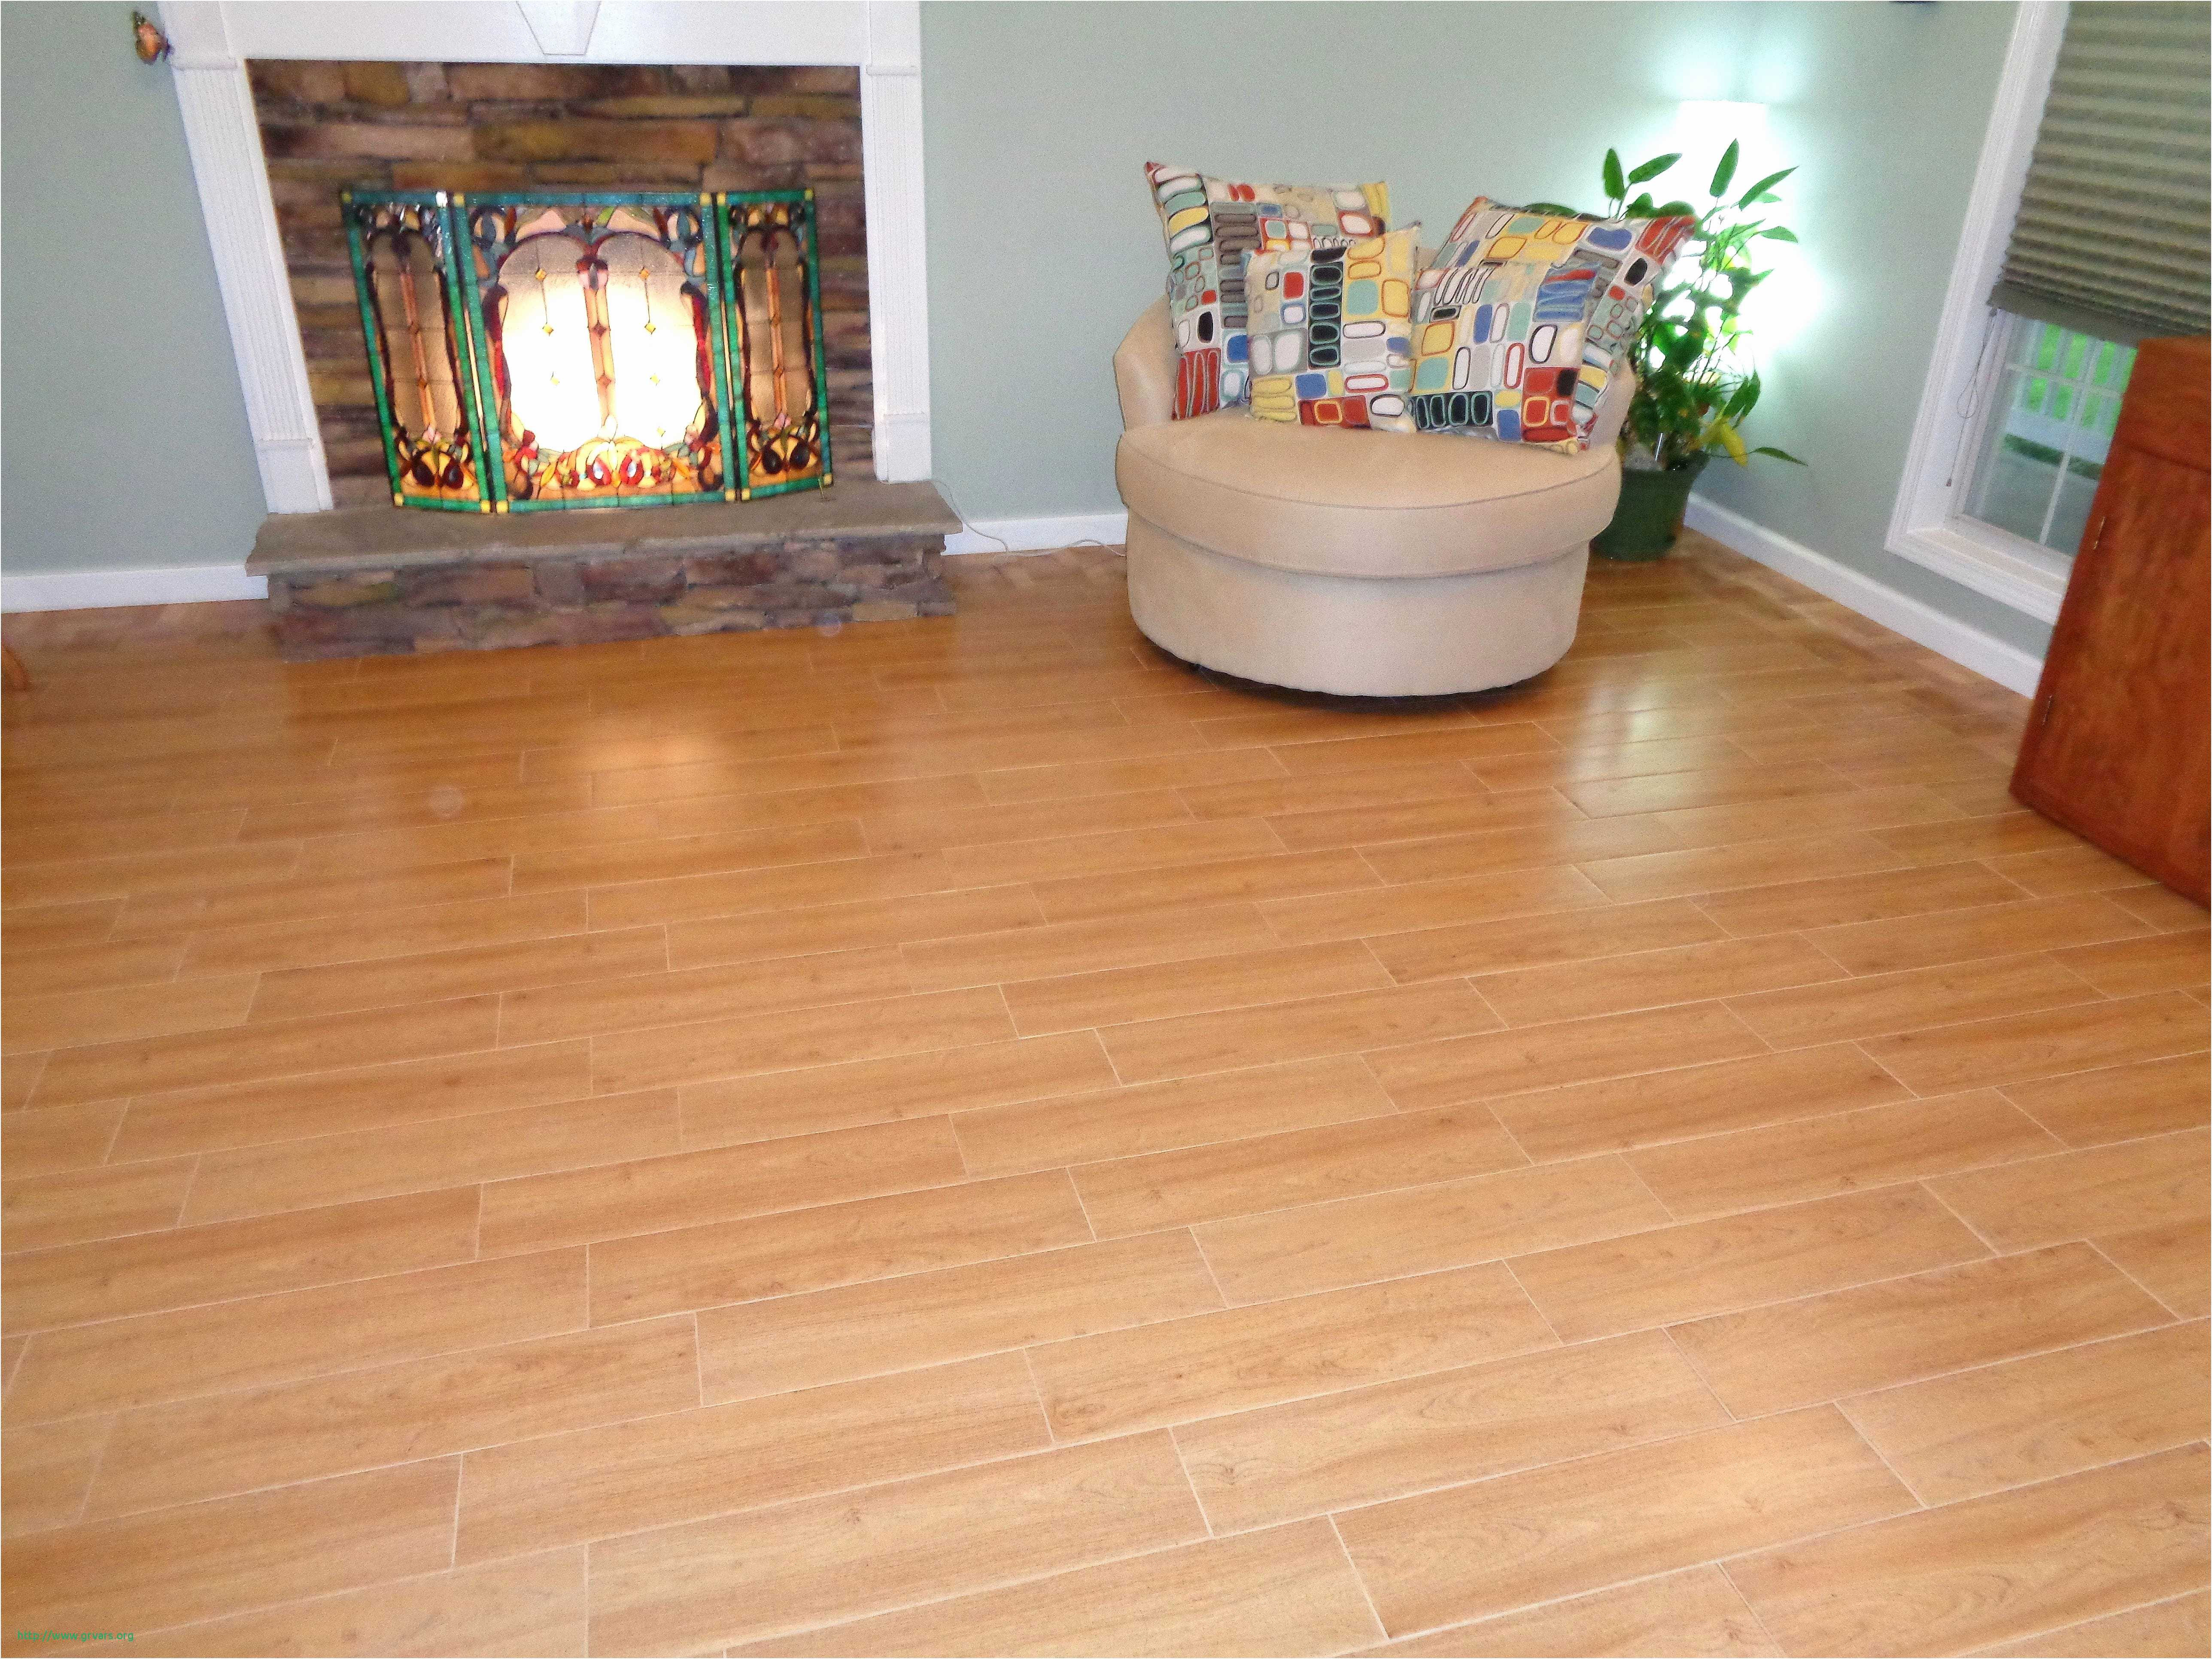 solid oak hardwood flooring prices of 20 impressionnant cheapest place to buy hardwood flooring ideas blog within cheapest place to buy hardwood flooring inspirant laminated wooden flooring prices guide to solid hardwood floors